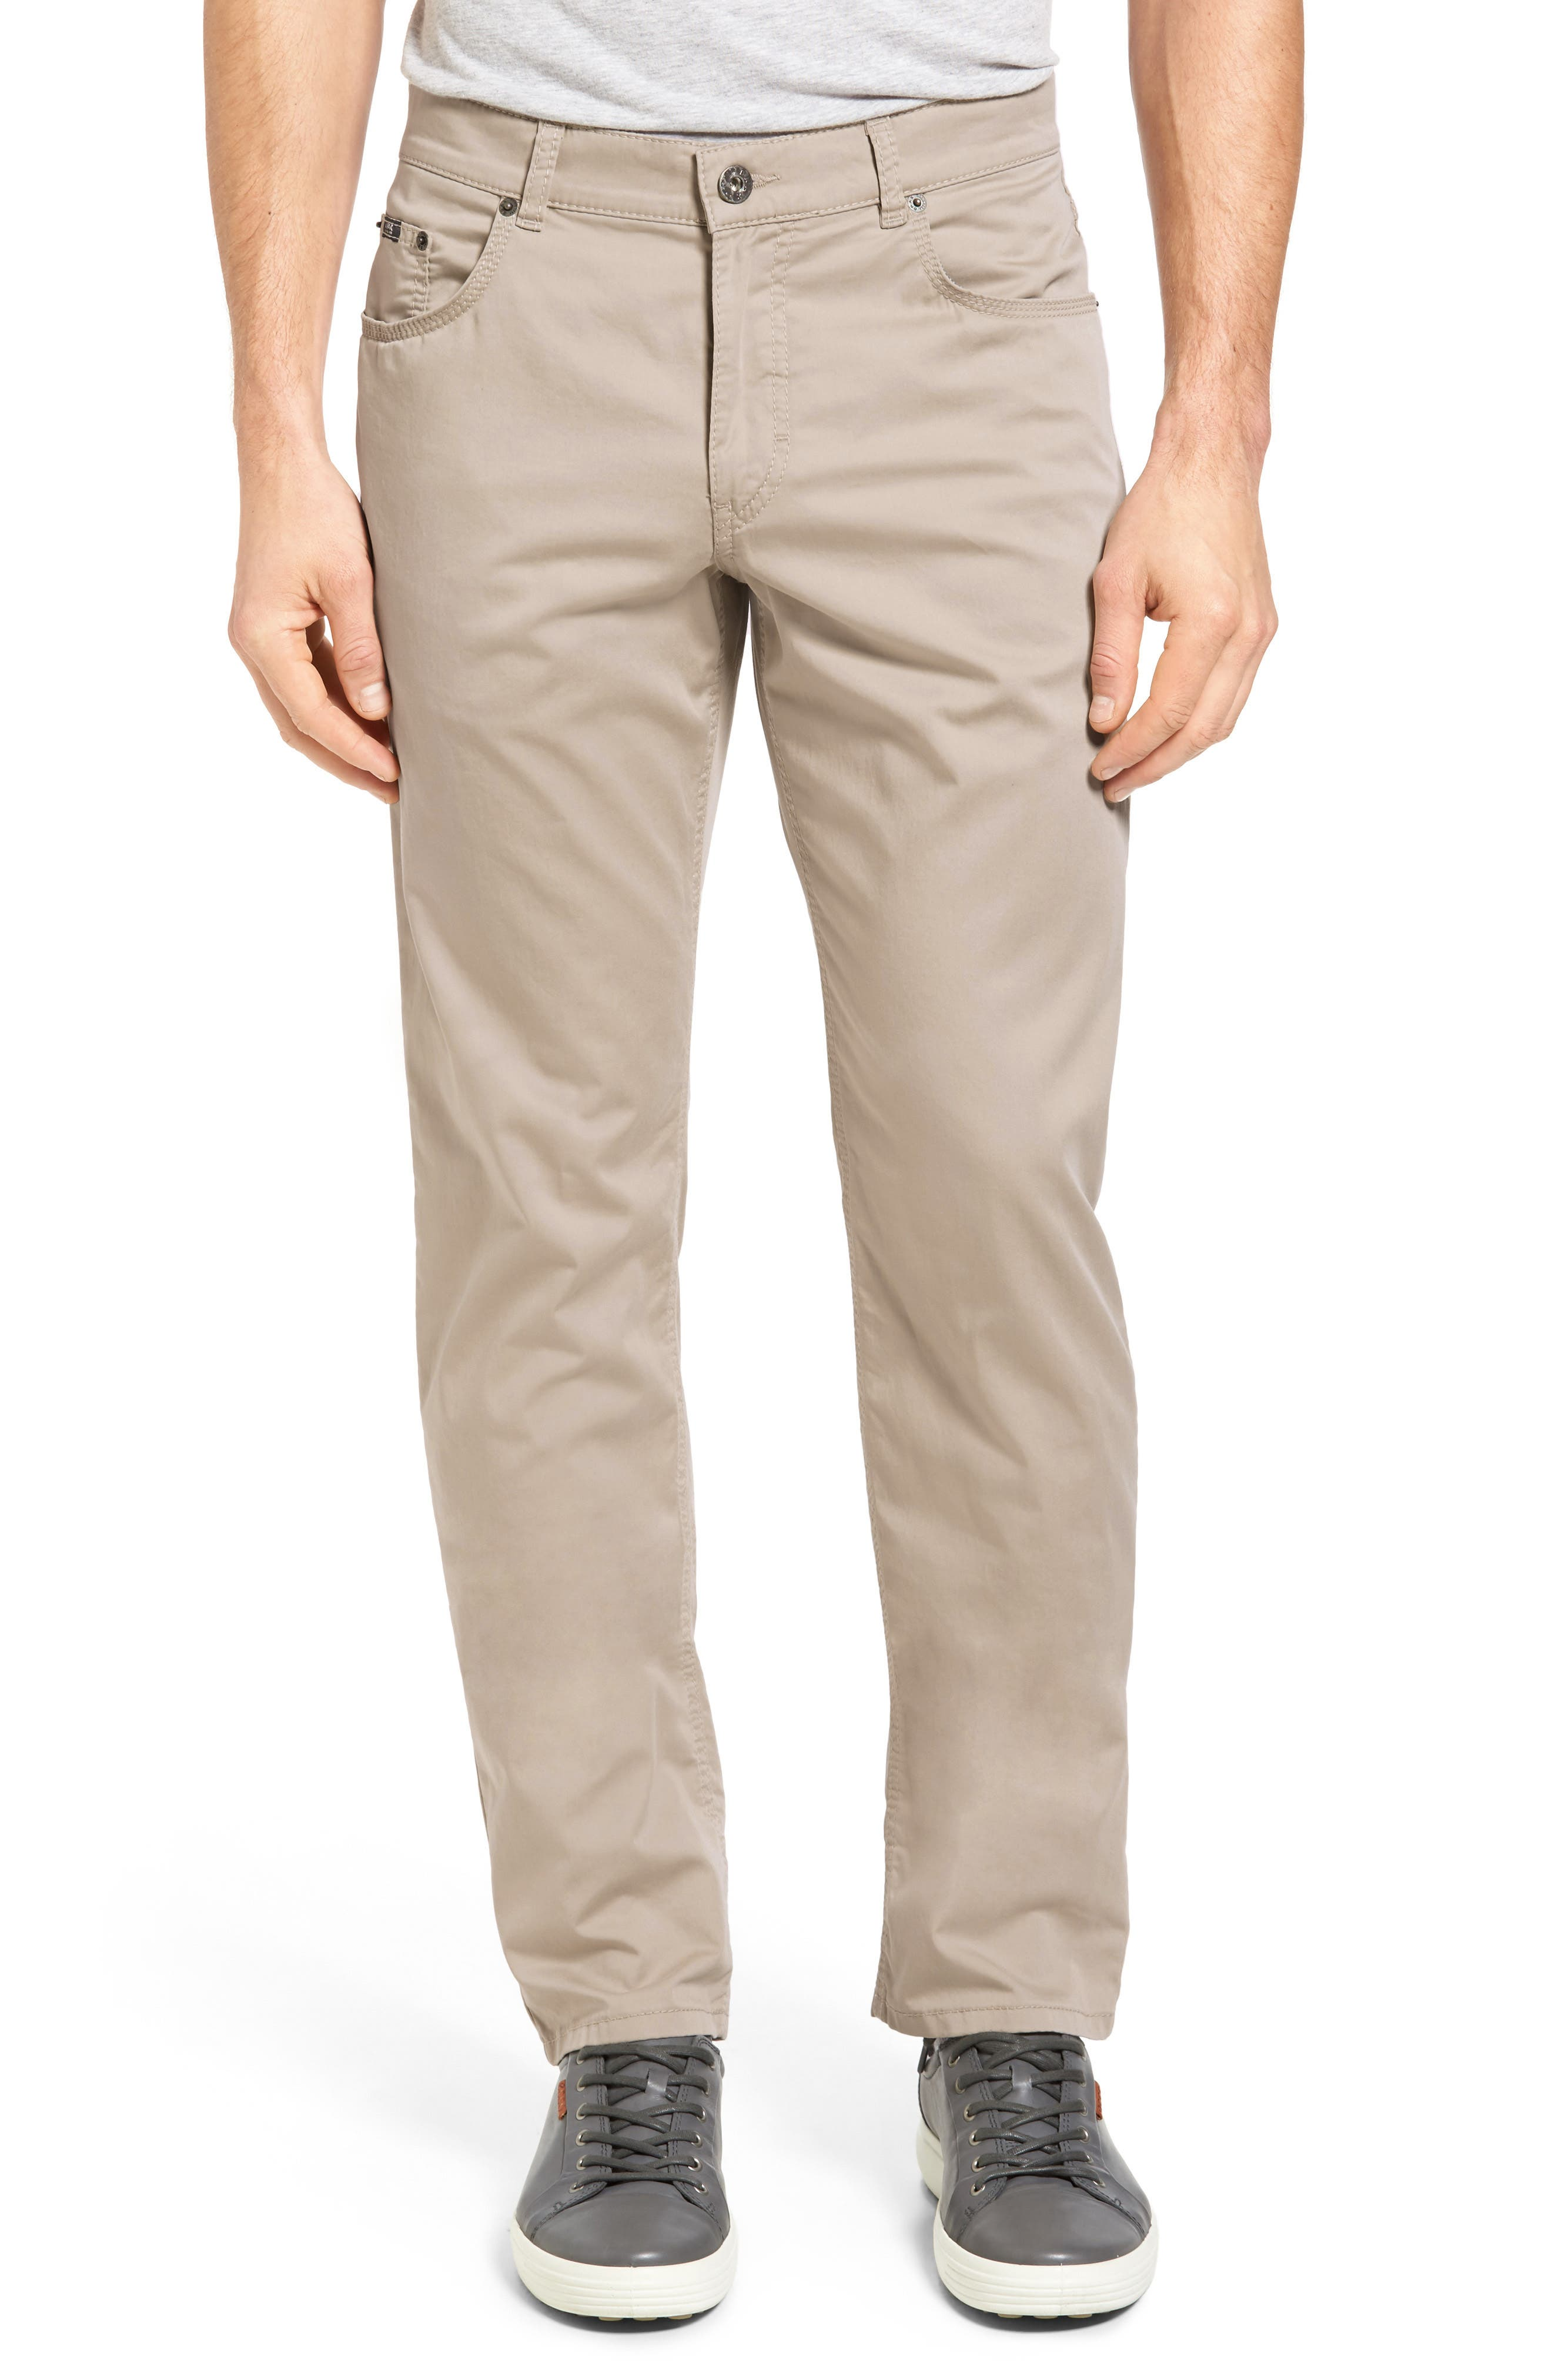 BRAX Prestige Stretch Cotton Pants